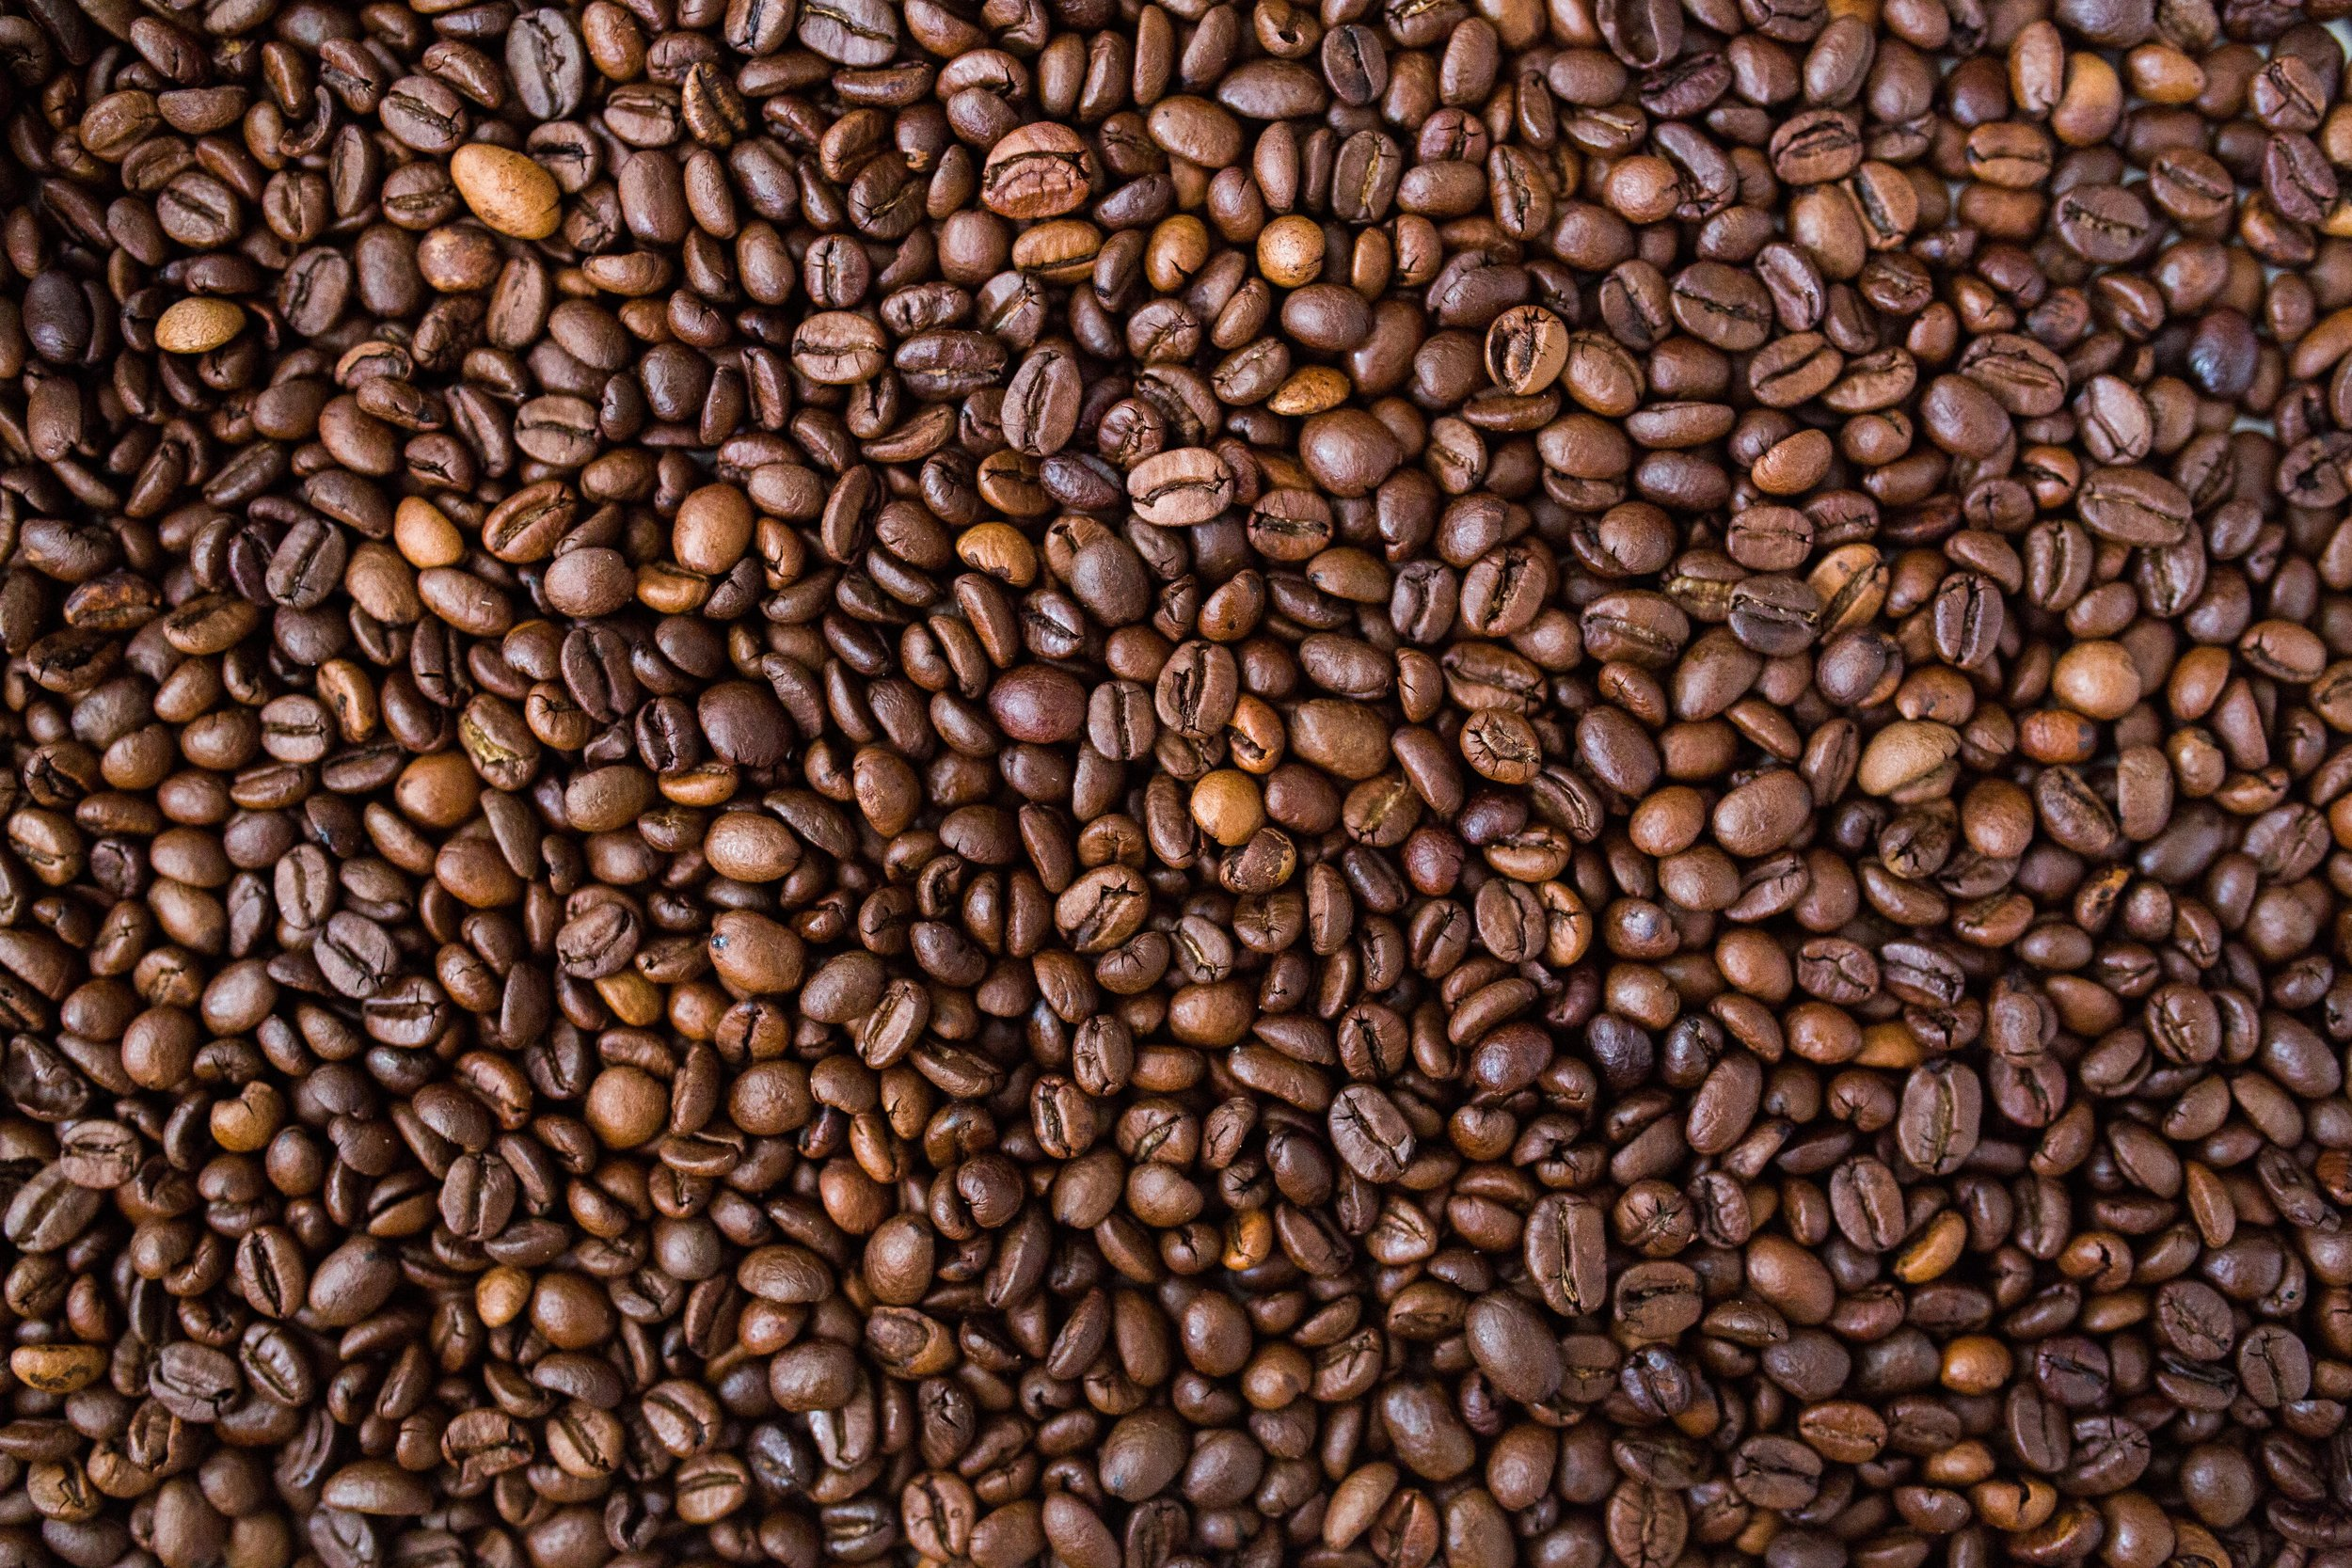 beans-brown-coffee-34085.jpg